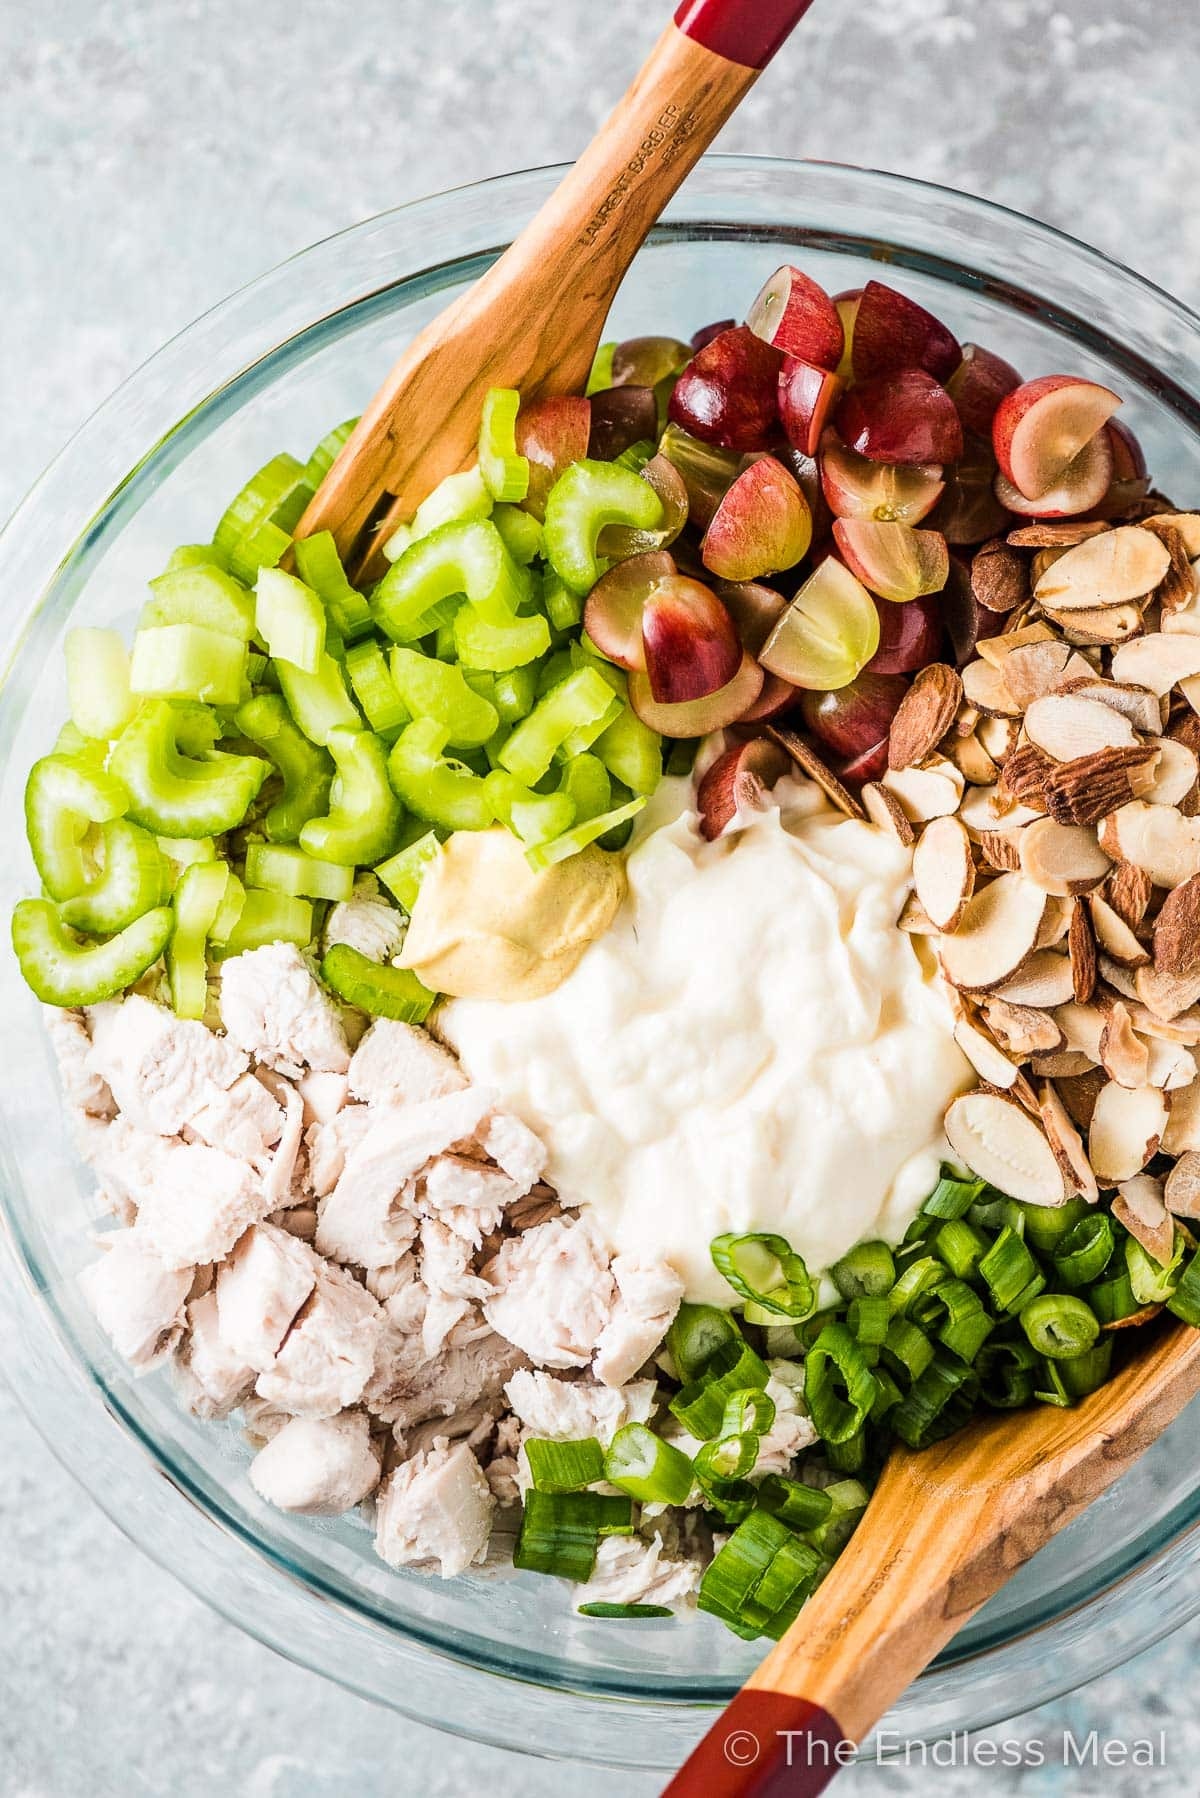 All the ingredients for how to make chicken salad in a glass bowl.